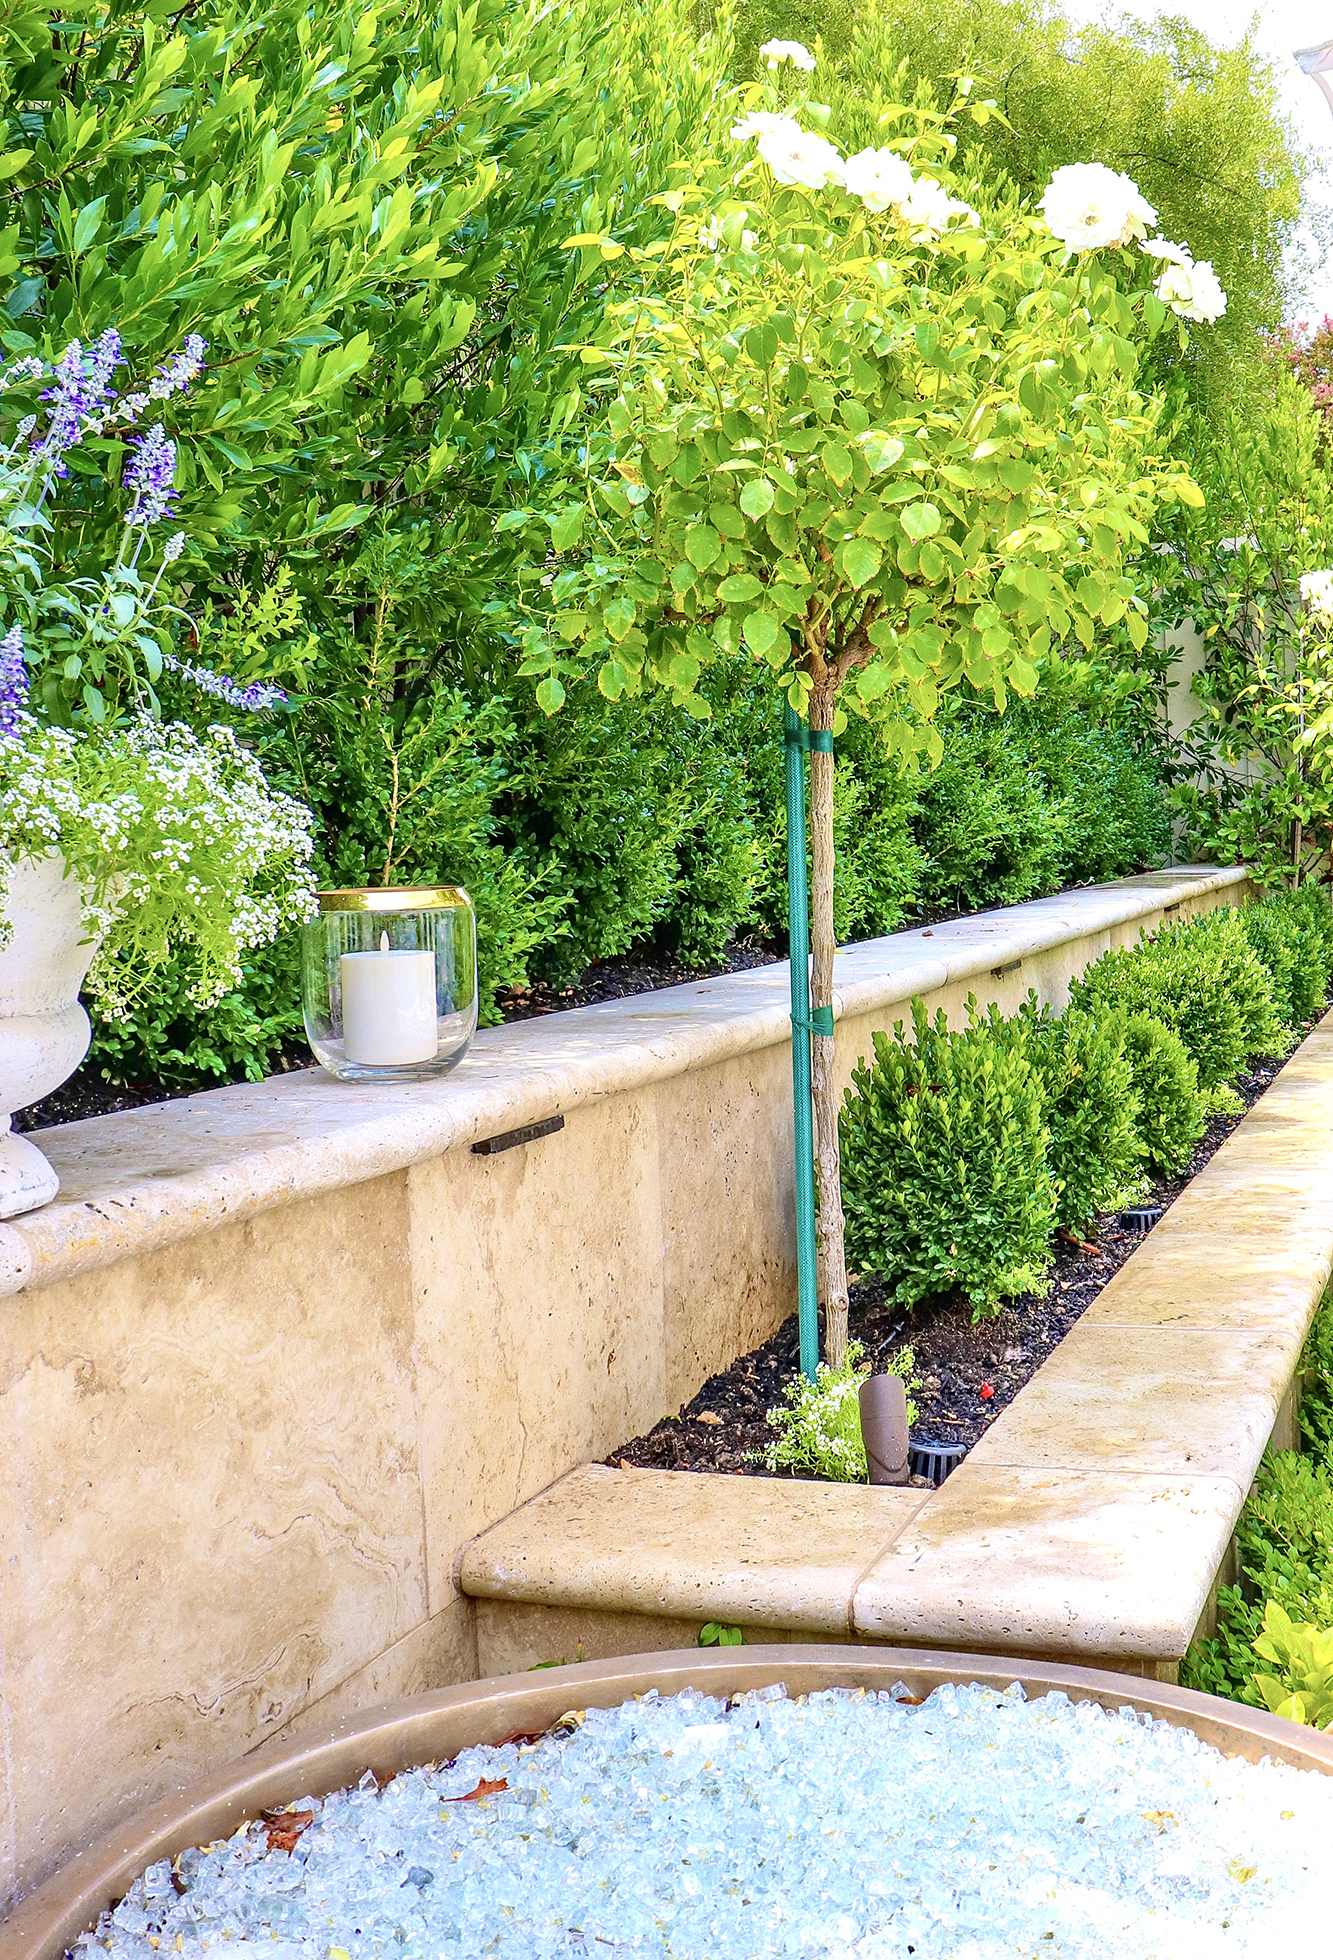 Formal Garden Plants // New boxwood in the backyard. How to design a perfect English Formal Garden & how I added new English Boxwood.